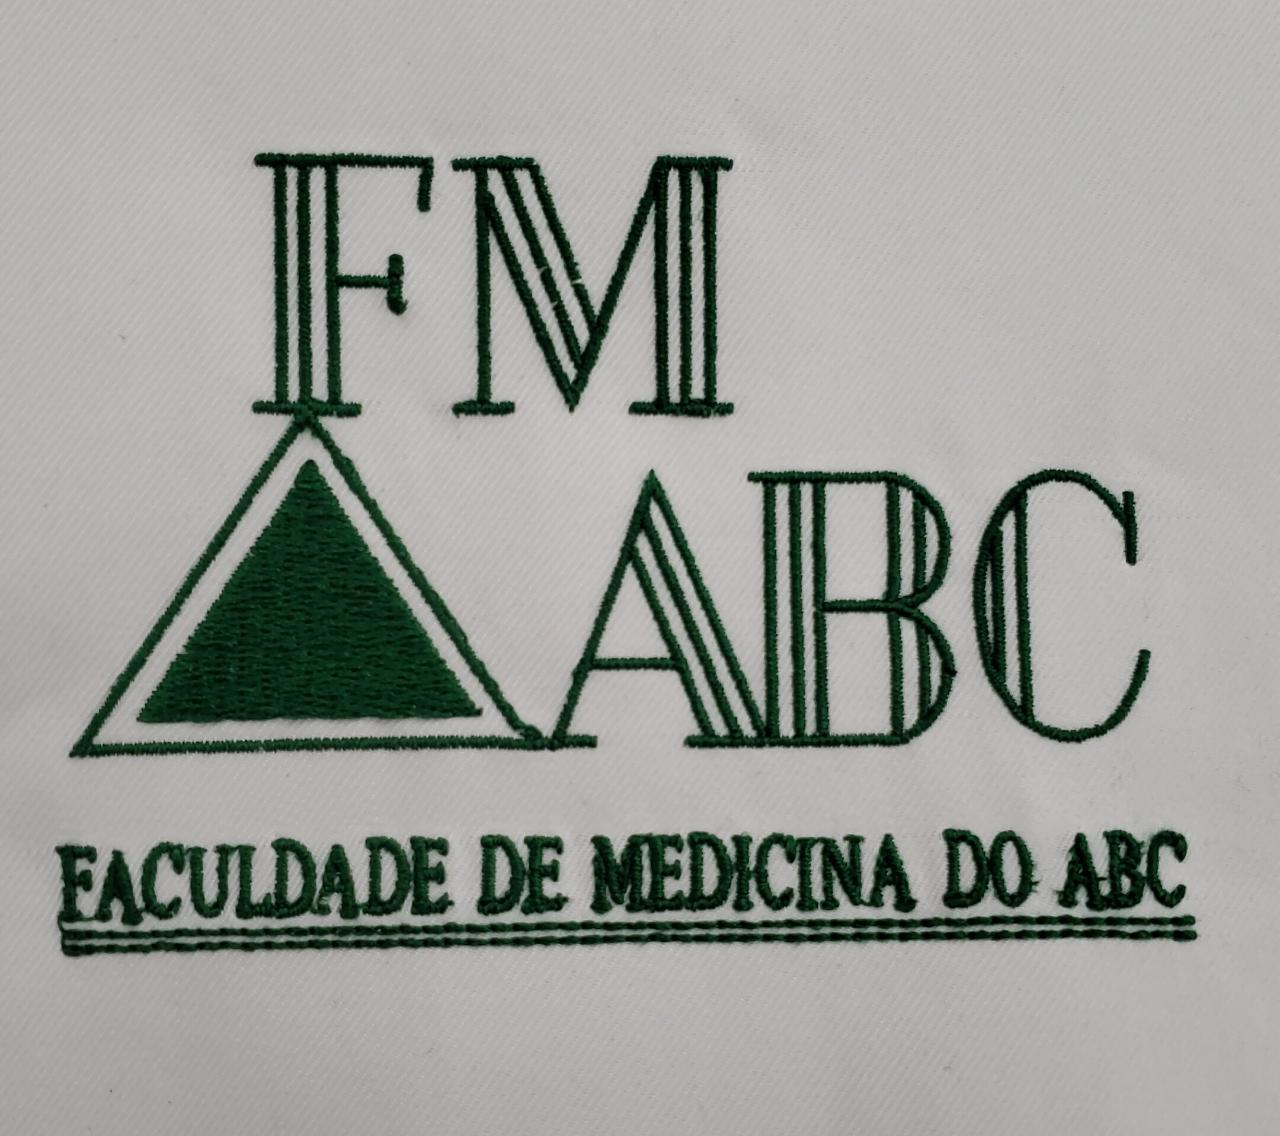 Faculdade de Medicina do ABC